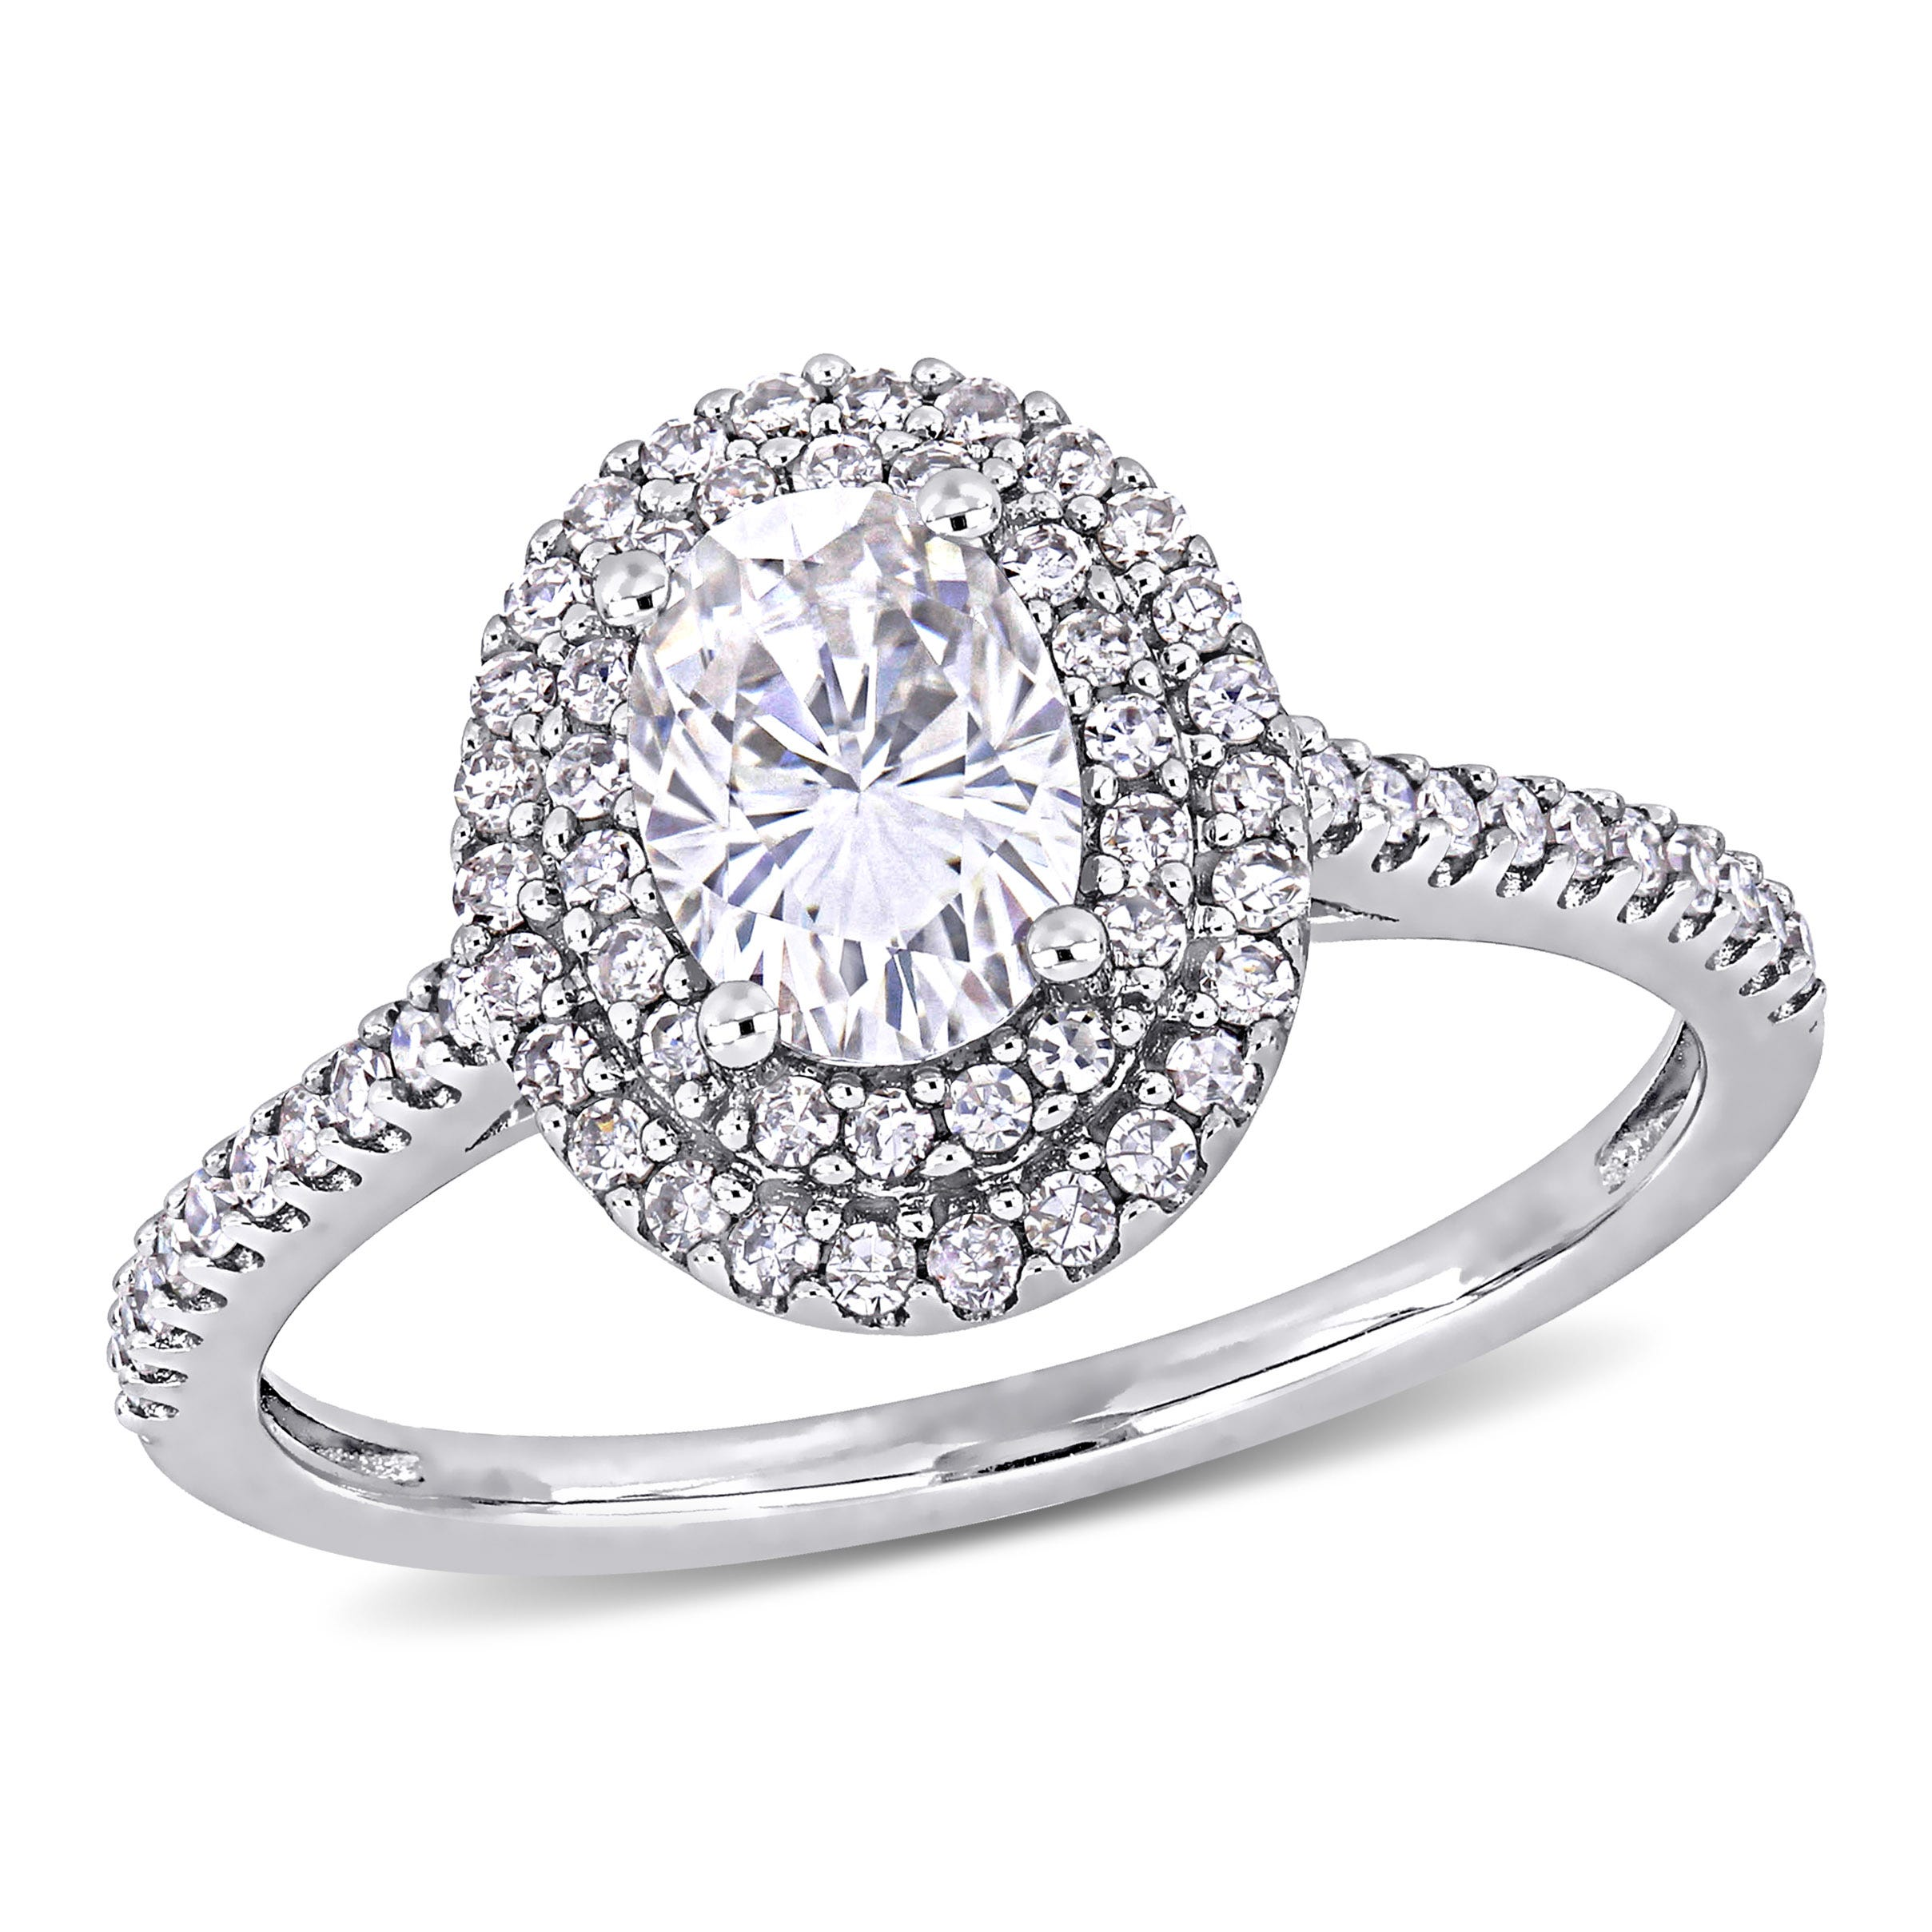 Oval Moissanite and Diamond Engagement Ring in 14K White Gold